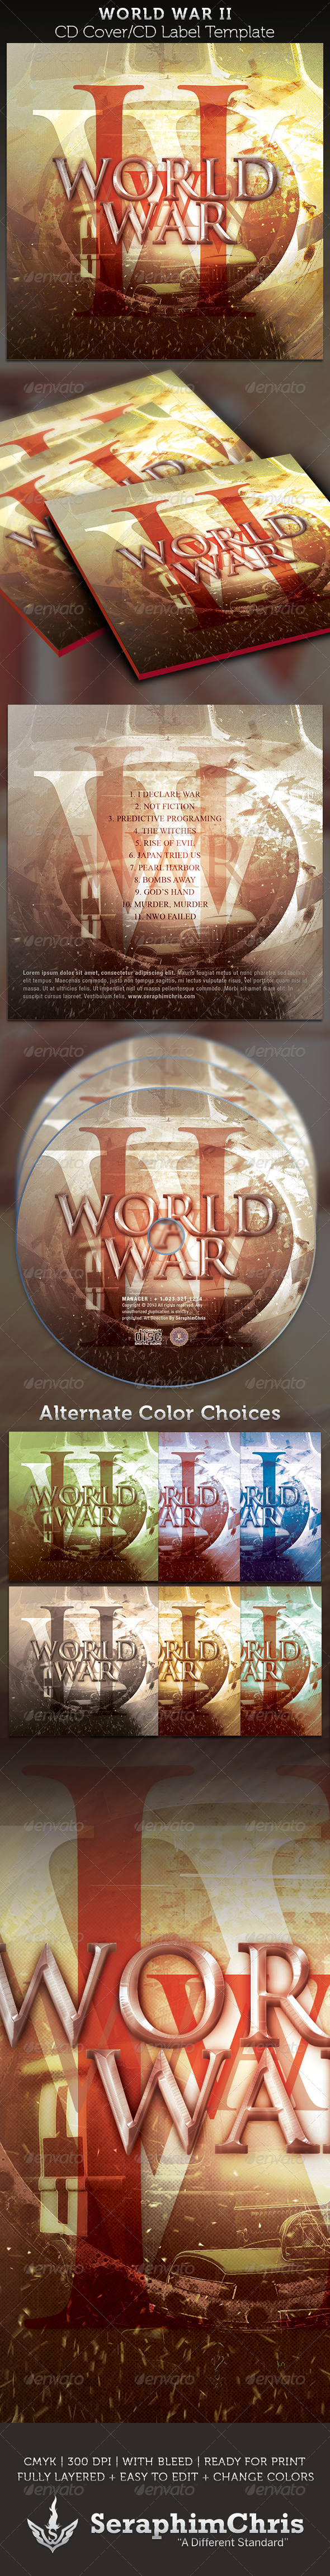 GraphicRiver World War II CD Cover Artwork Template 4087619